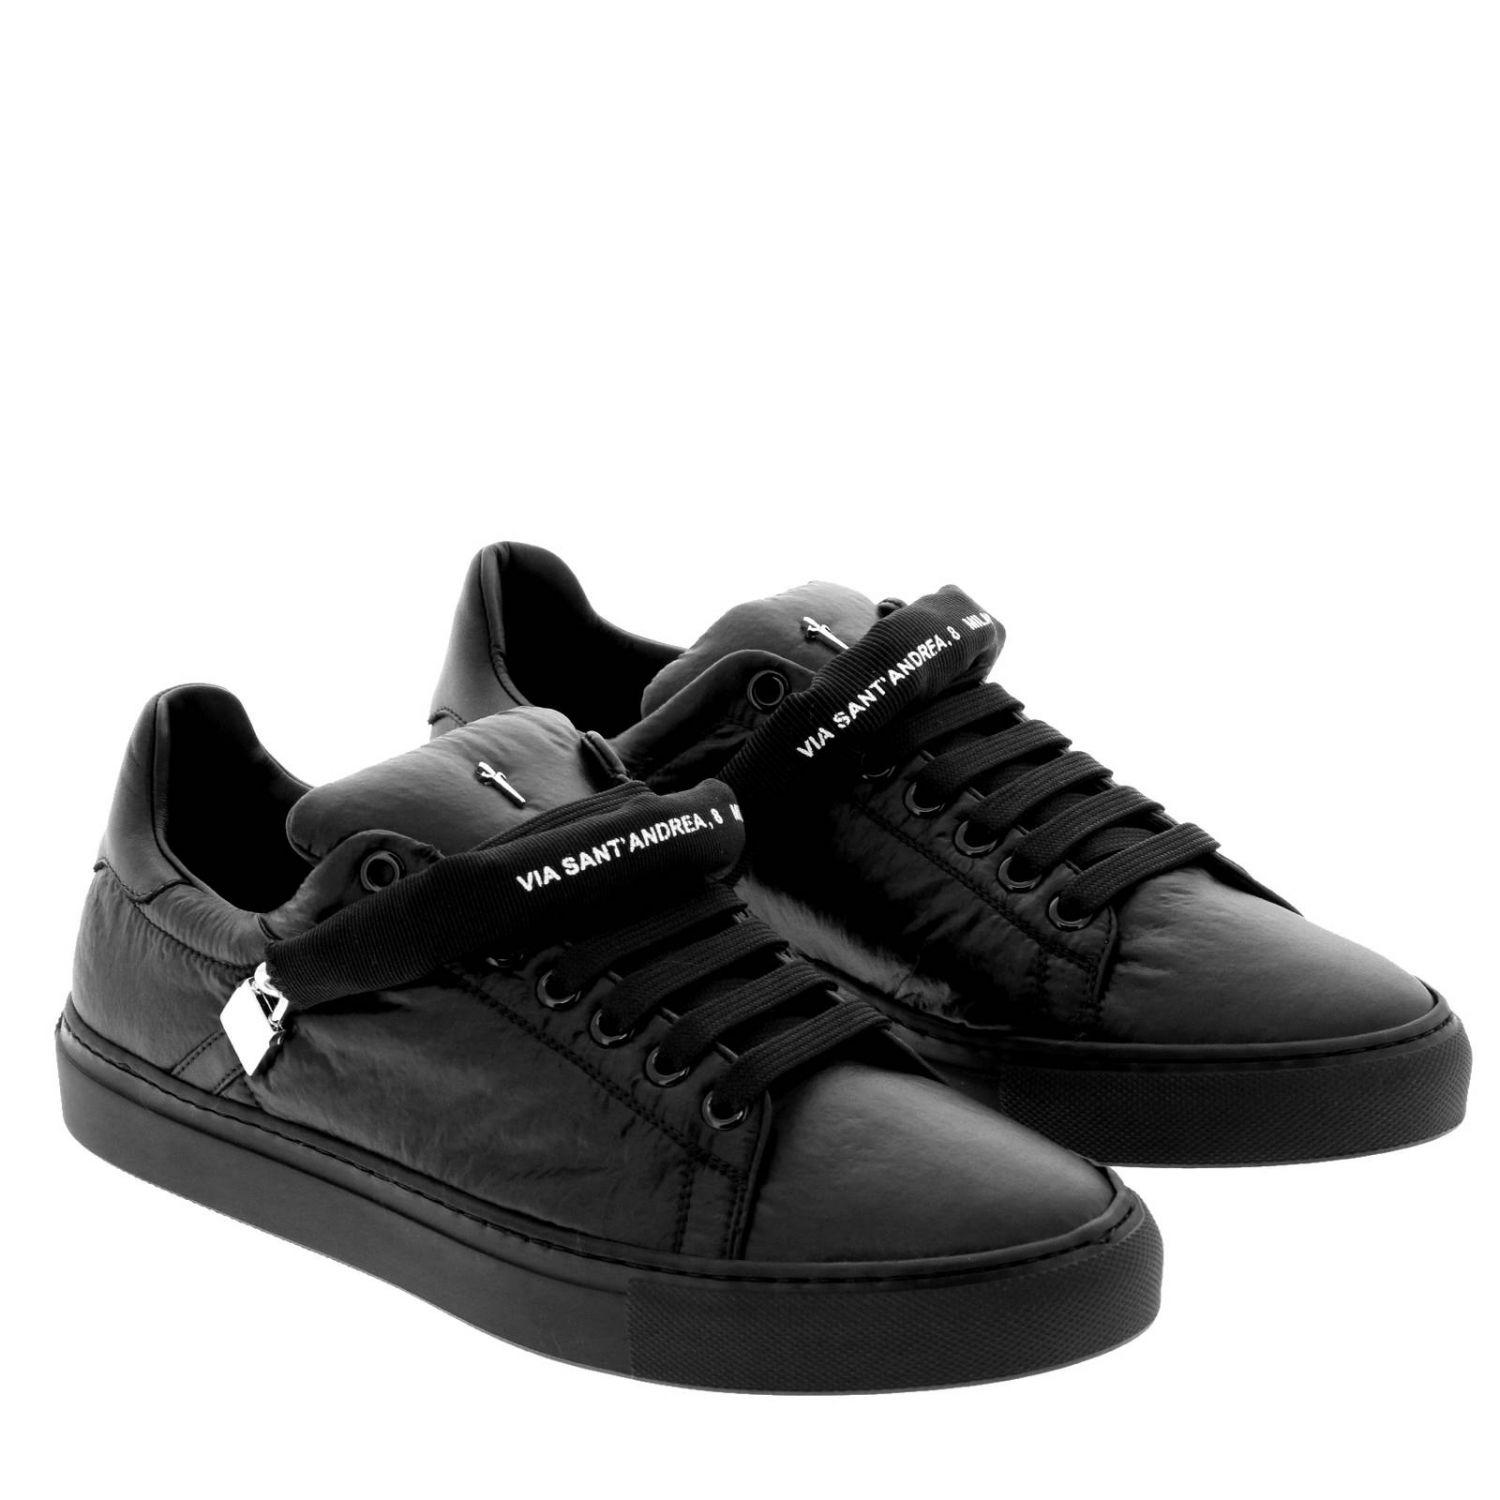 Cesare Paciotti Leather Sneakers Shoes